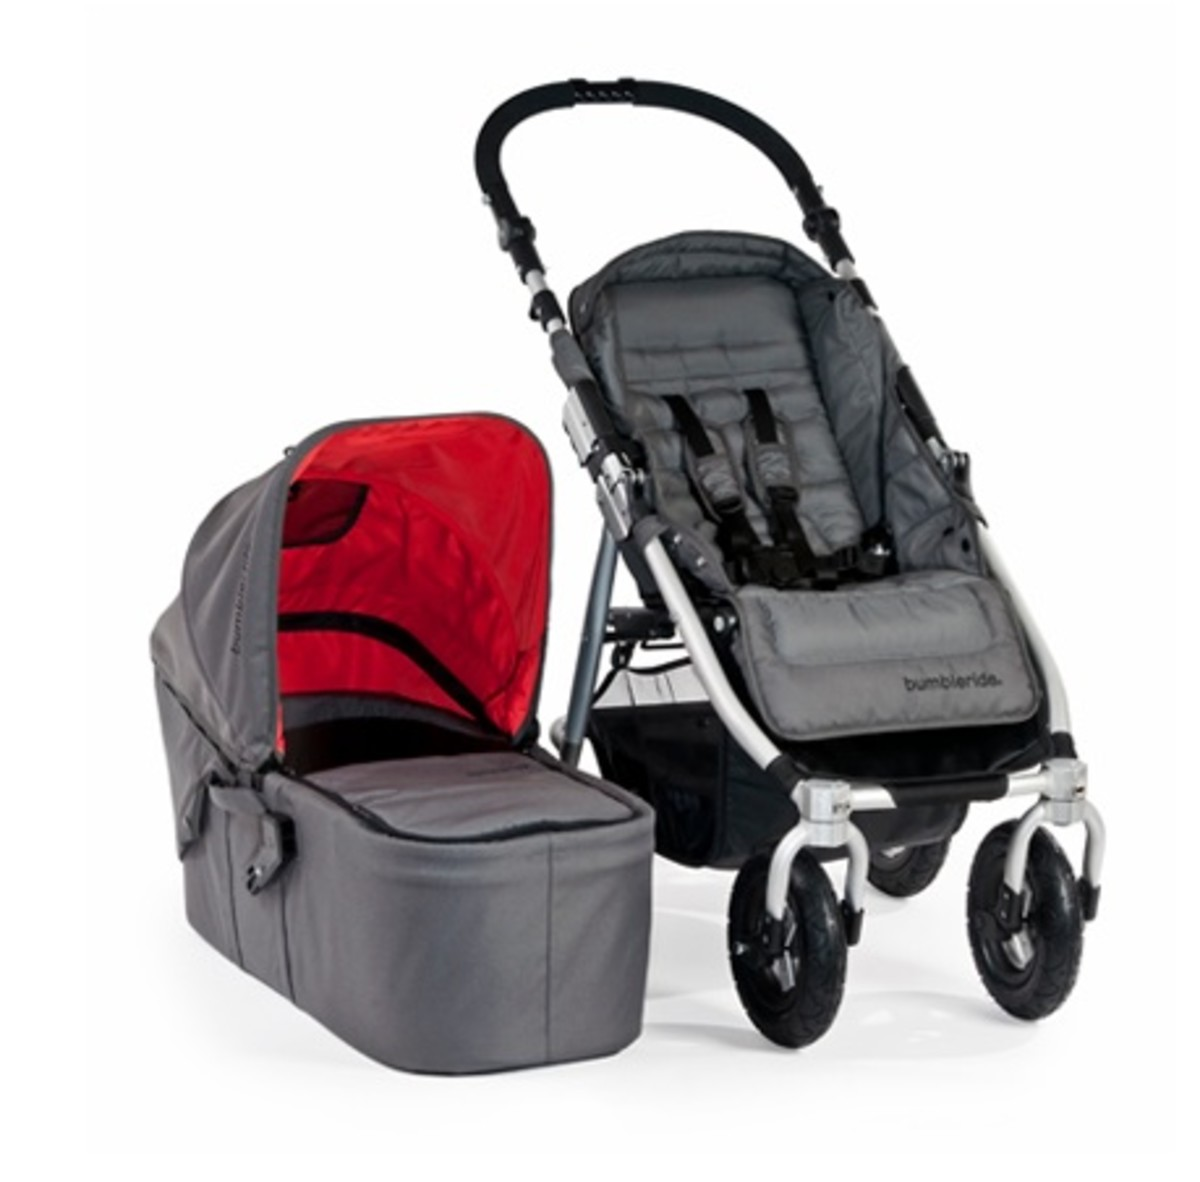 new strollers for 2014